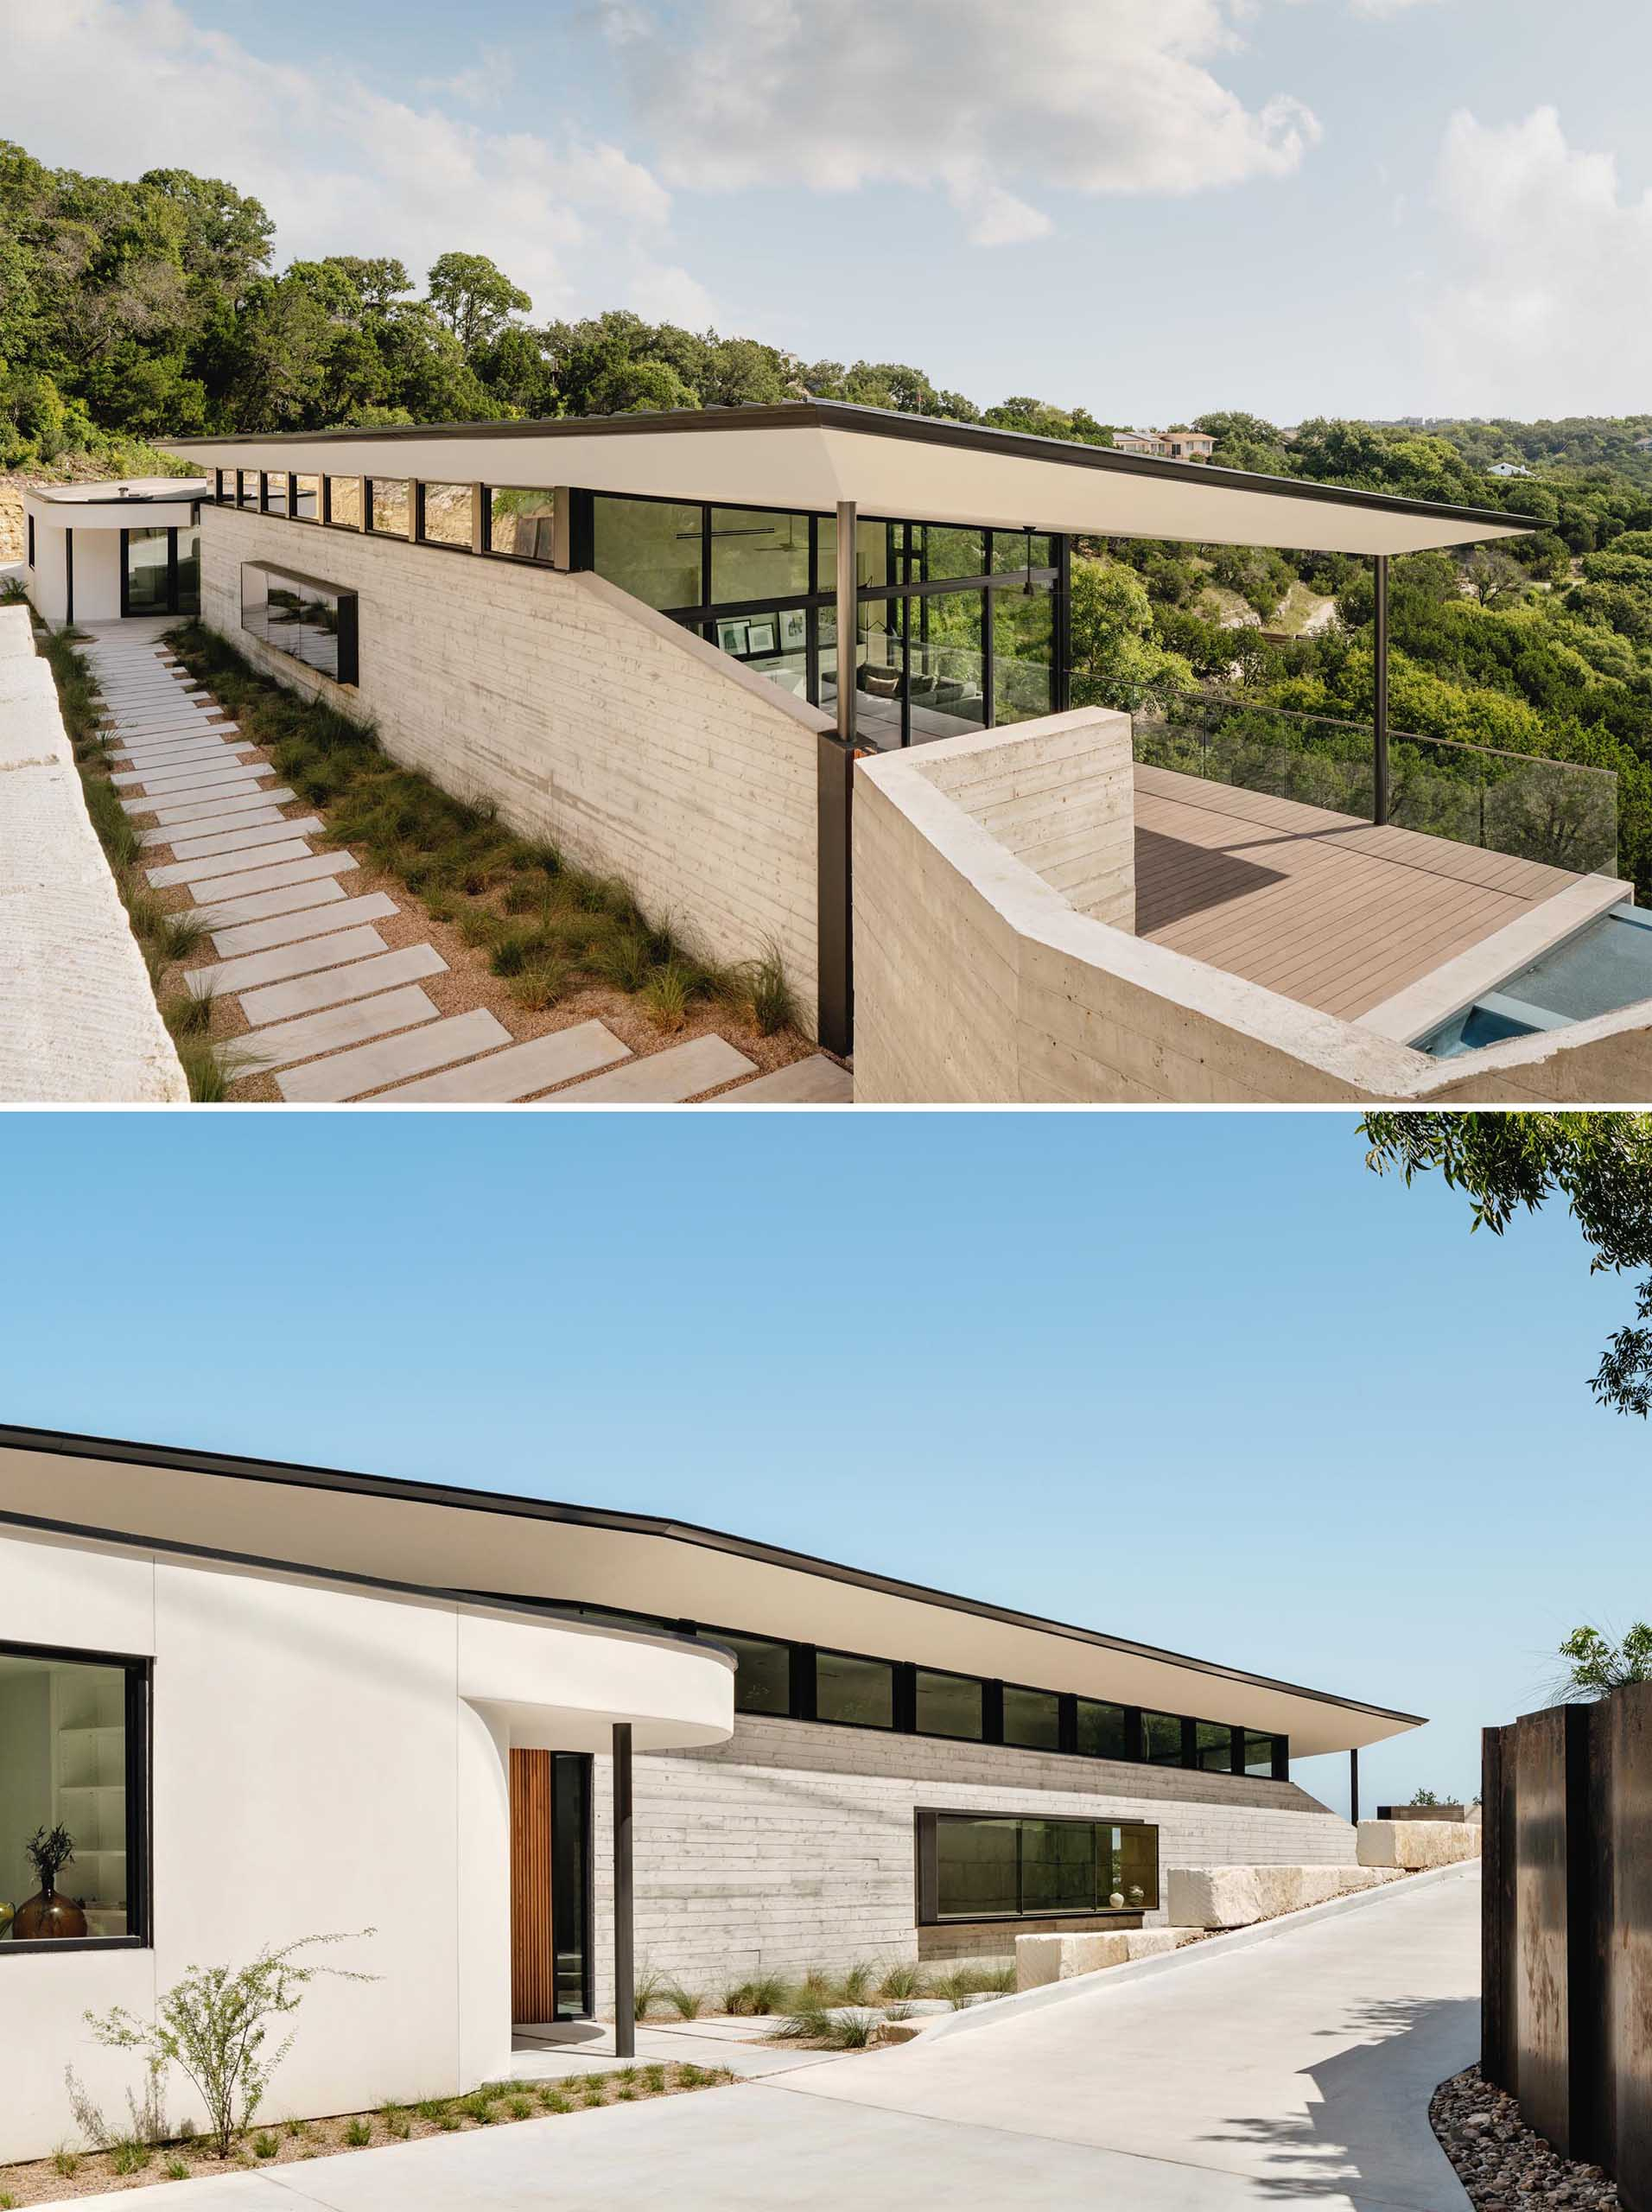 The boomerang shape of this modern home accentuates the natural curvature of the land, while high walls lined with clerestory windows create a buffer between the busy adjacent road while also balancing light throughout the day.